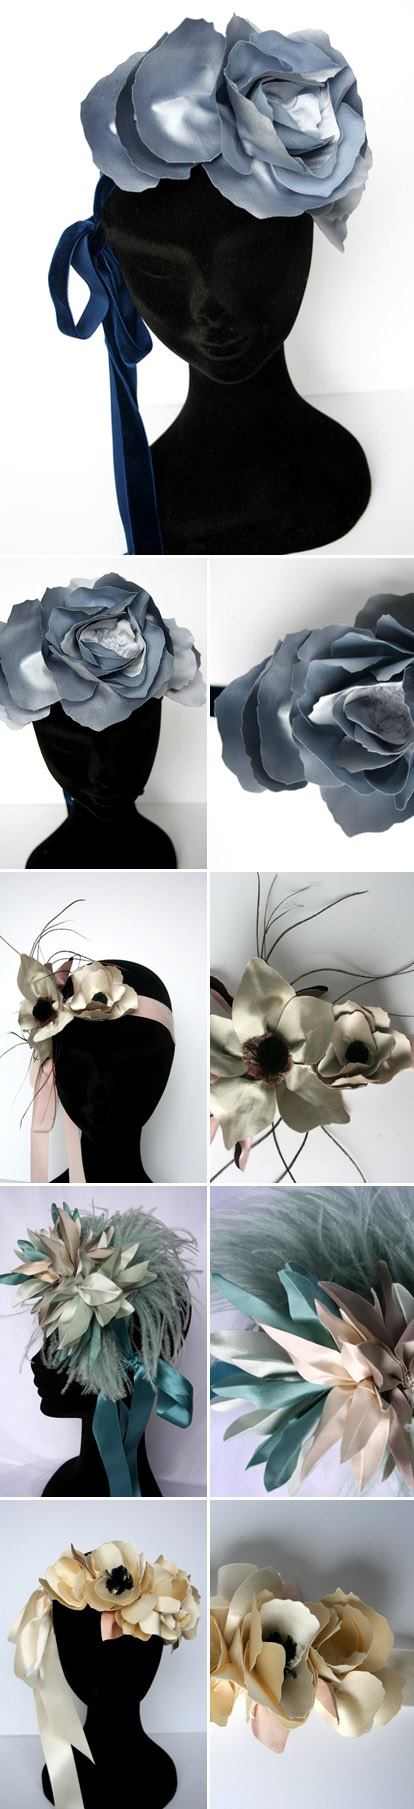 beautiful oversized hand made floral wedding headpieces by Florica on Etsy.com